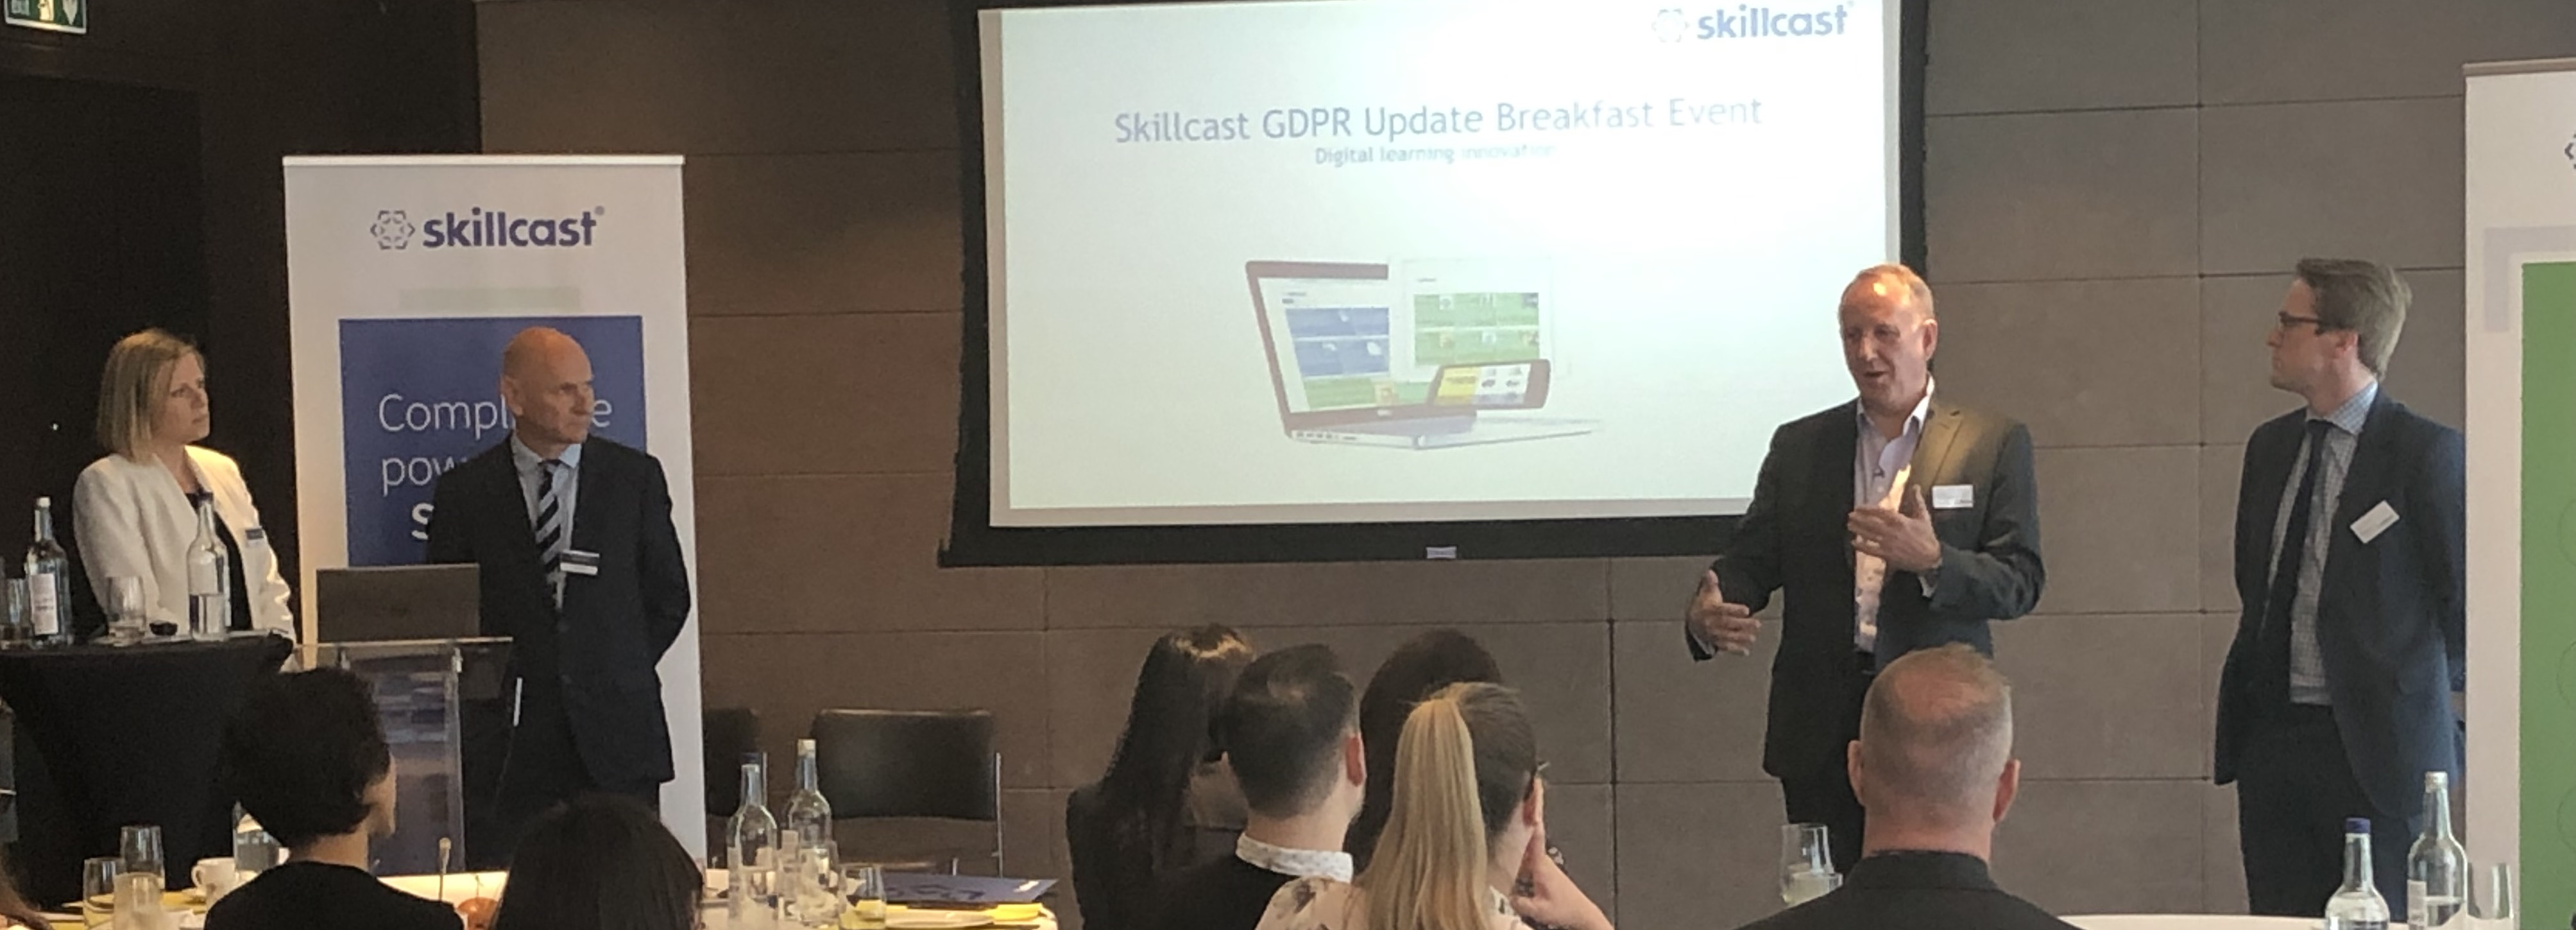 Highlights from the GDPR 2019 Summit